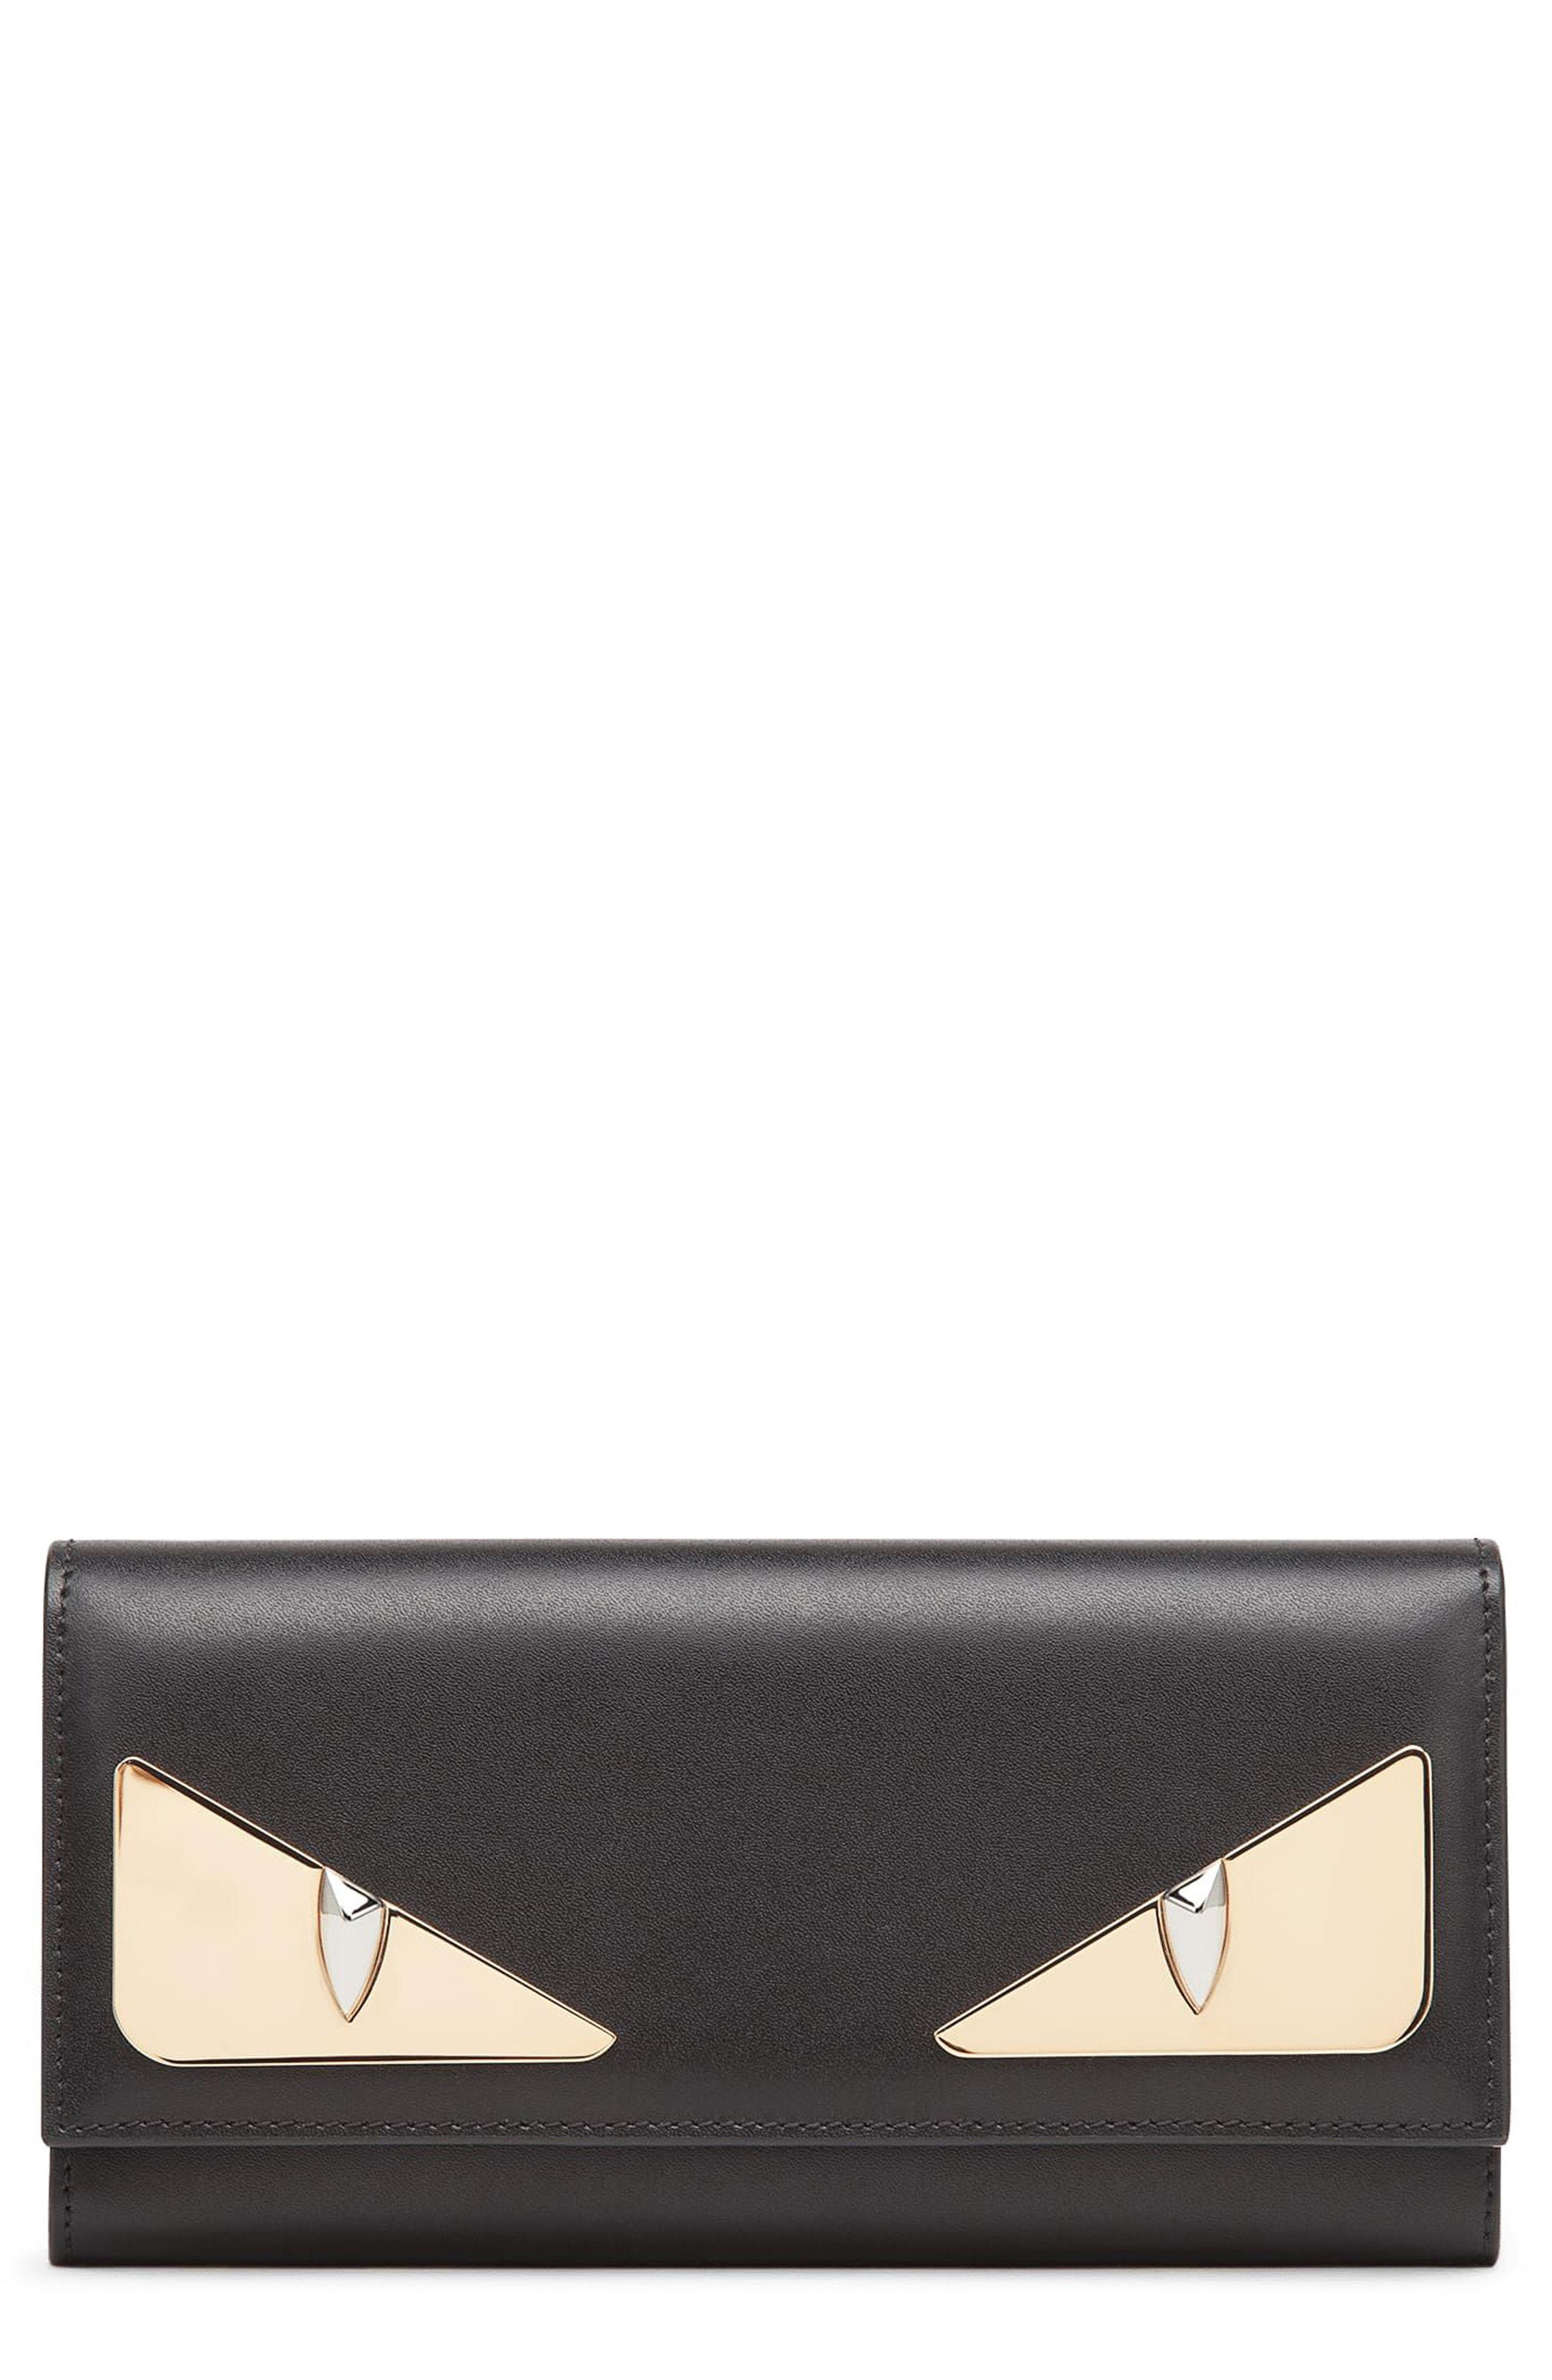 cd4085d43 Lyst - Fendi Continental Leather Wallet in Black - Save 25%